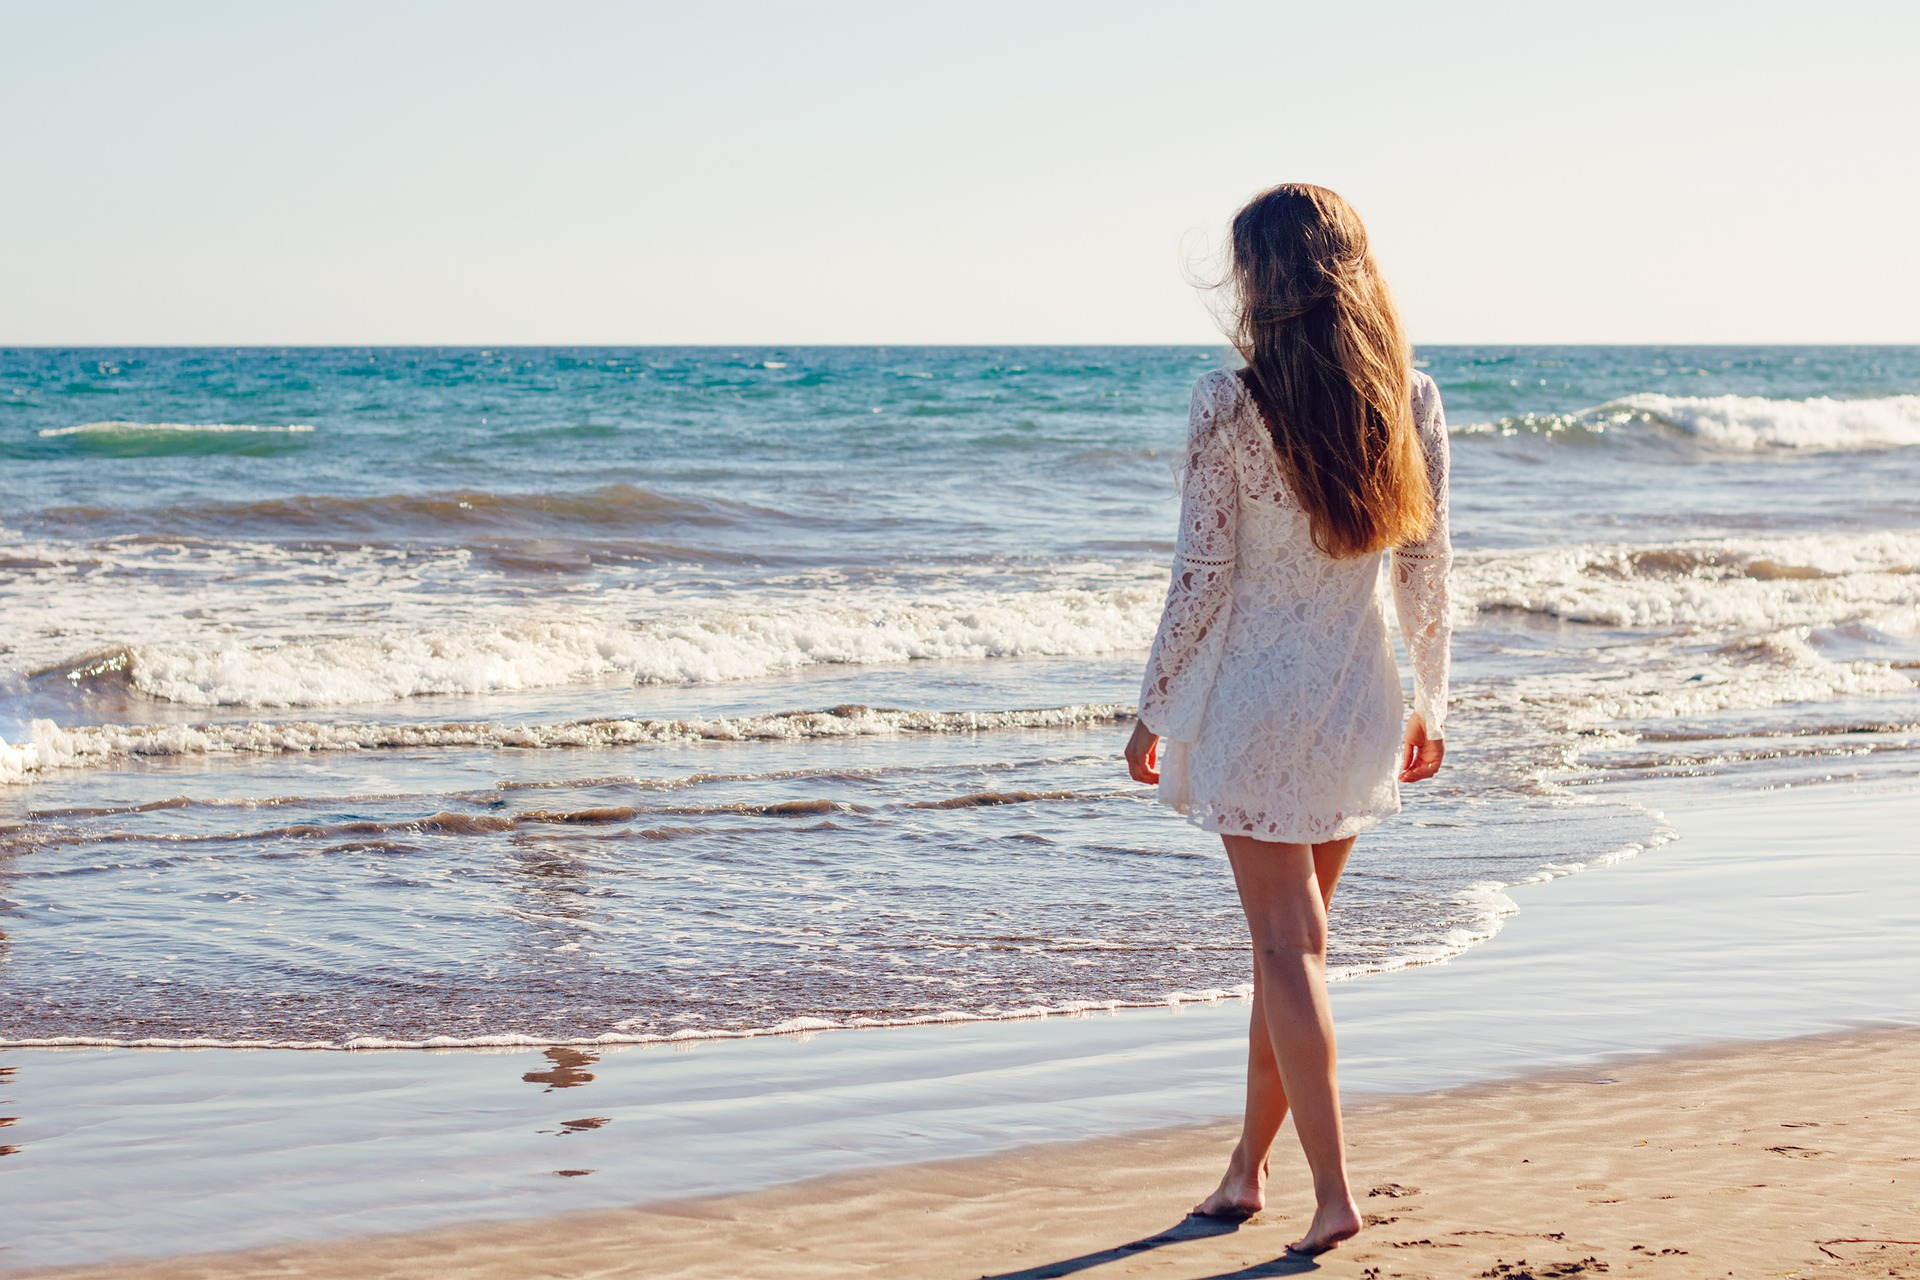 Things to Keep in Mind While Having Fun on Beach